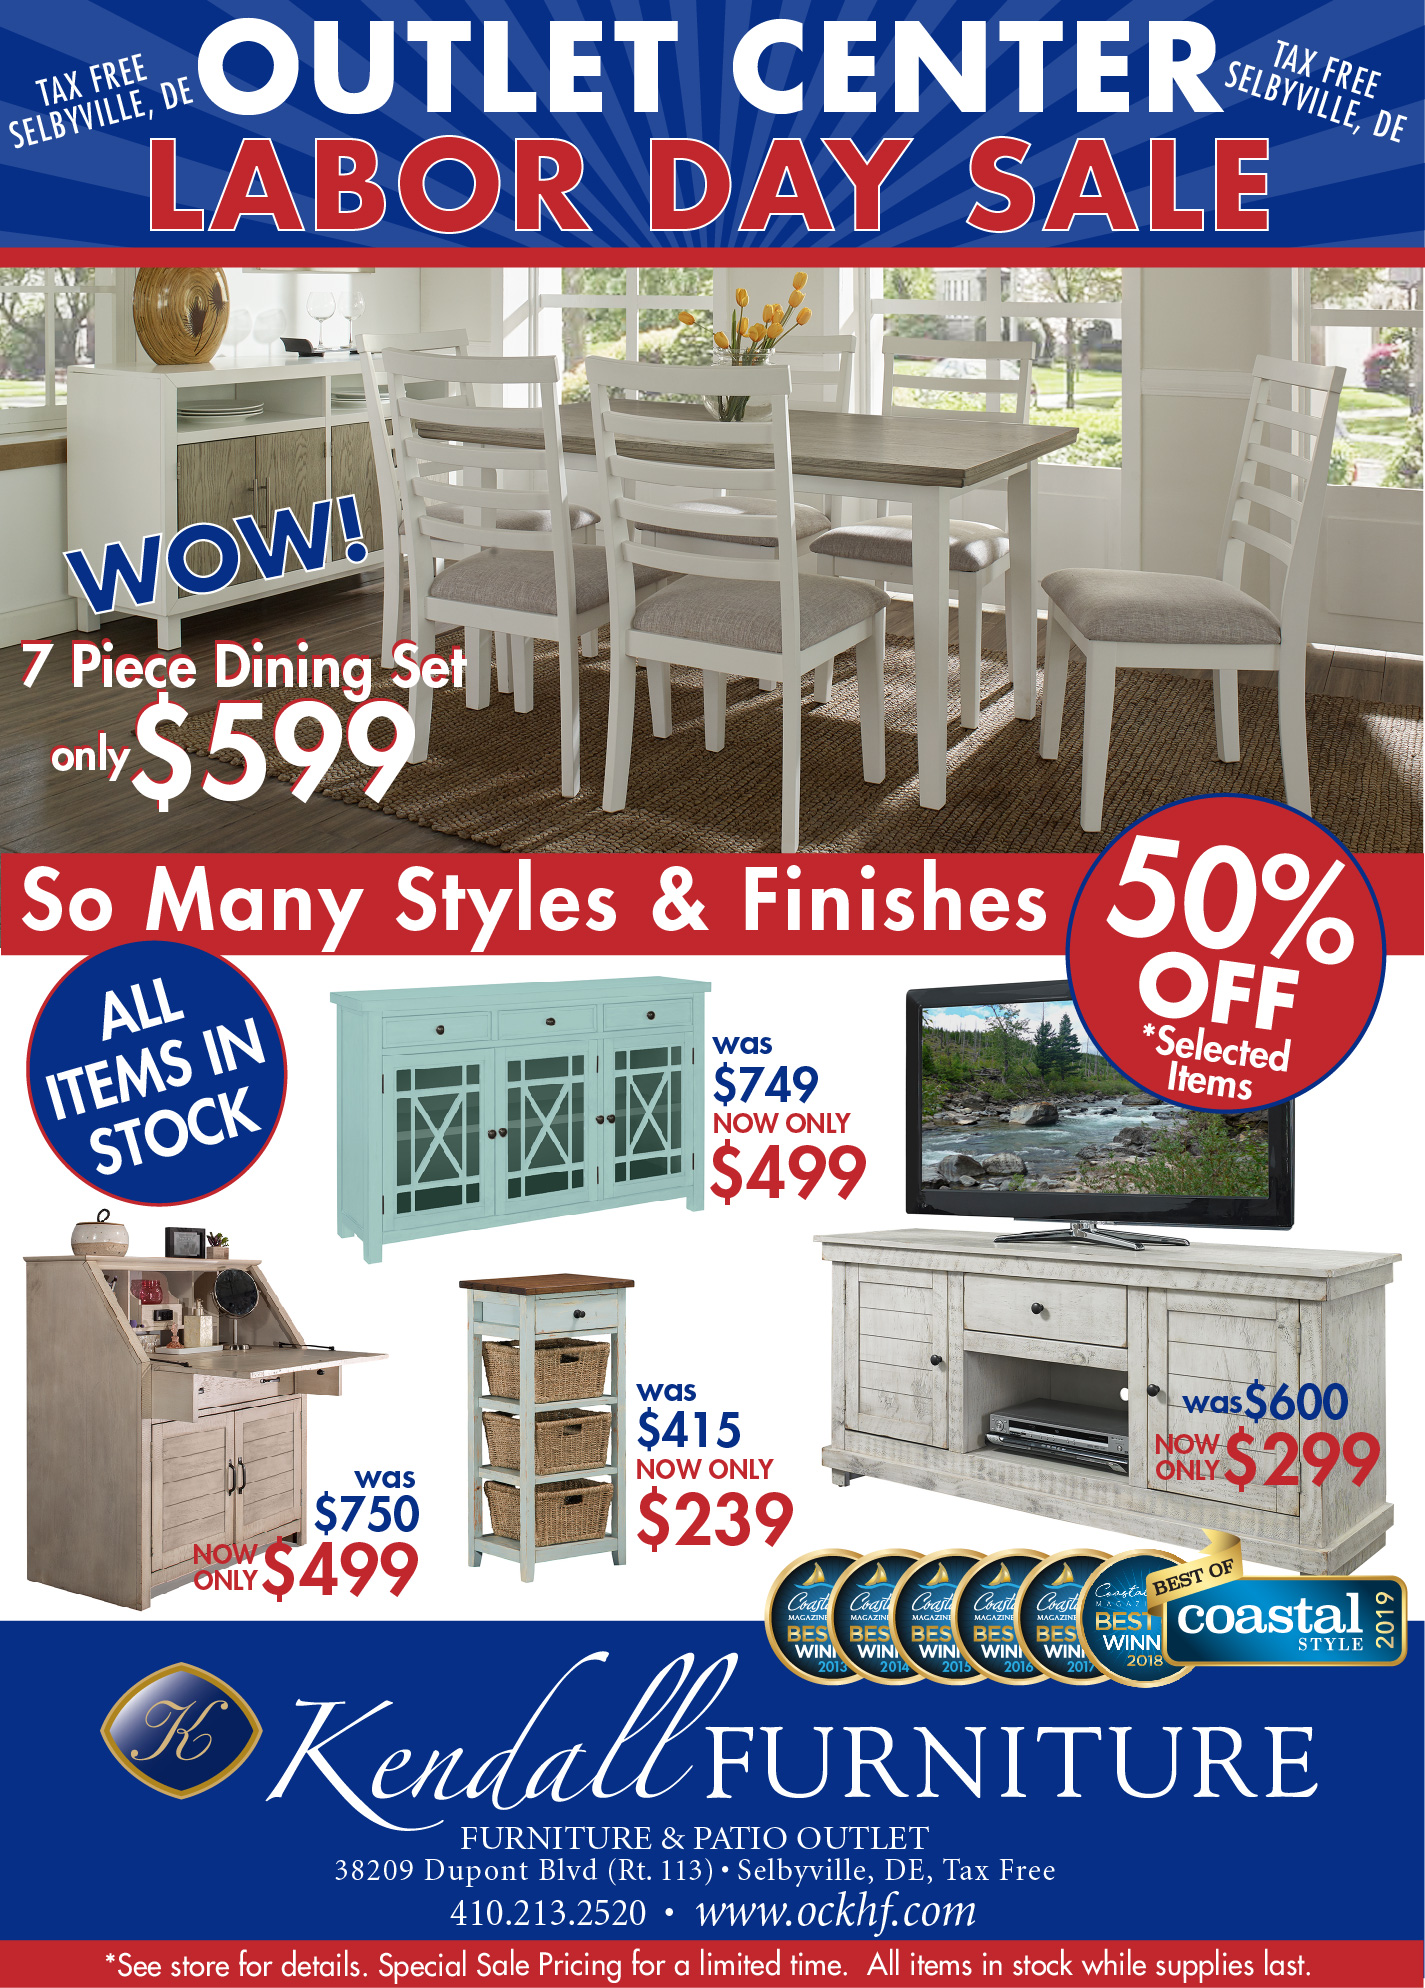 Labor Day Outlet Sale